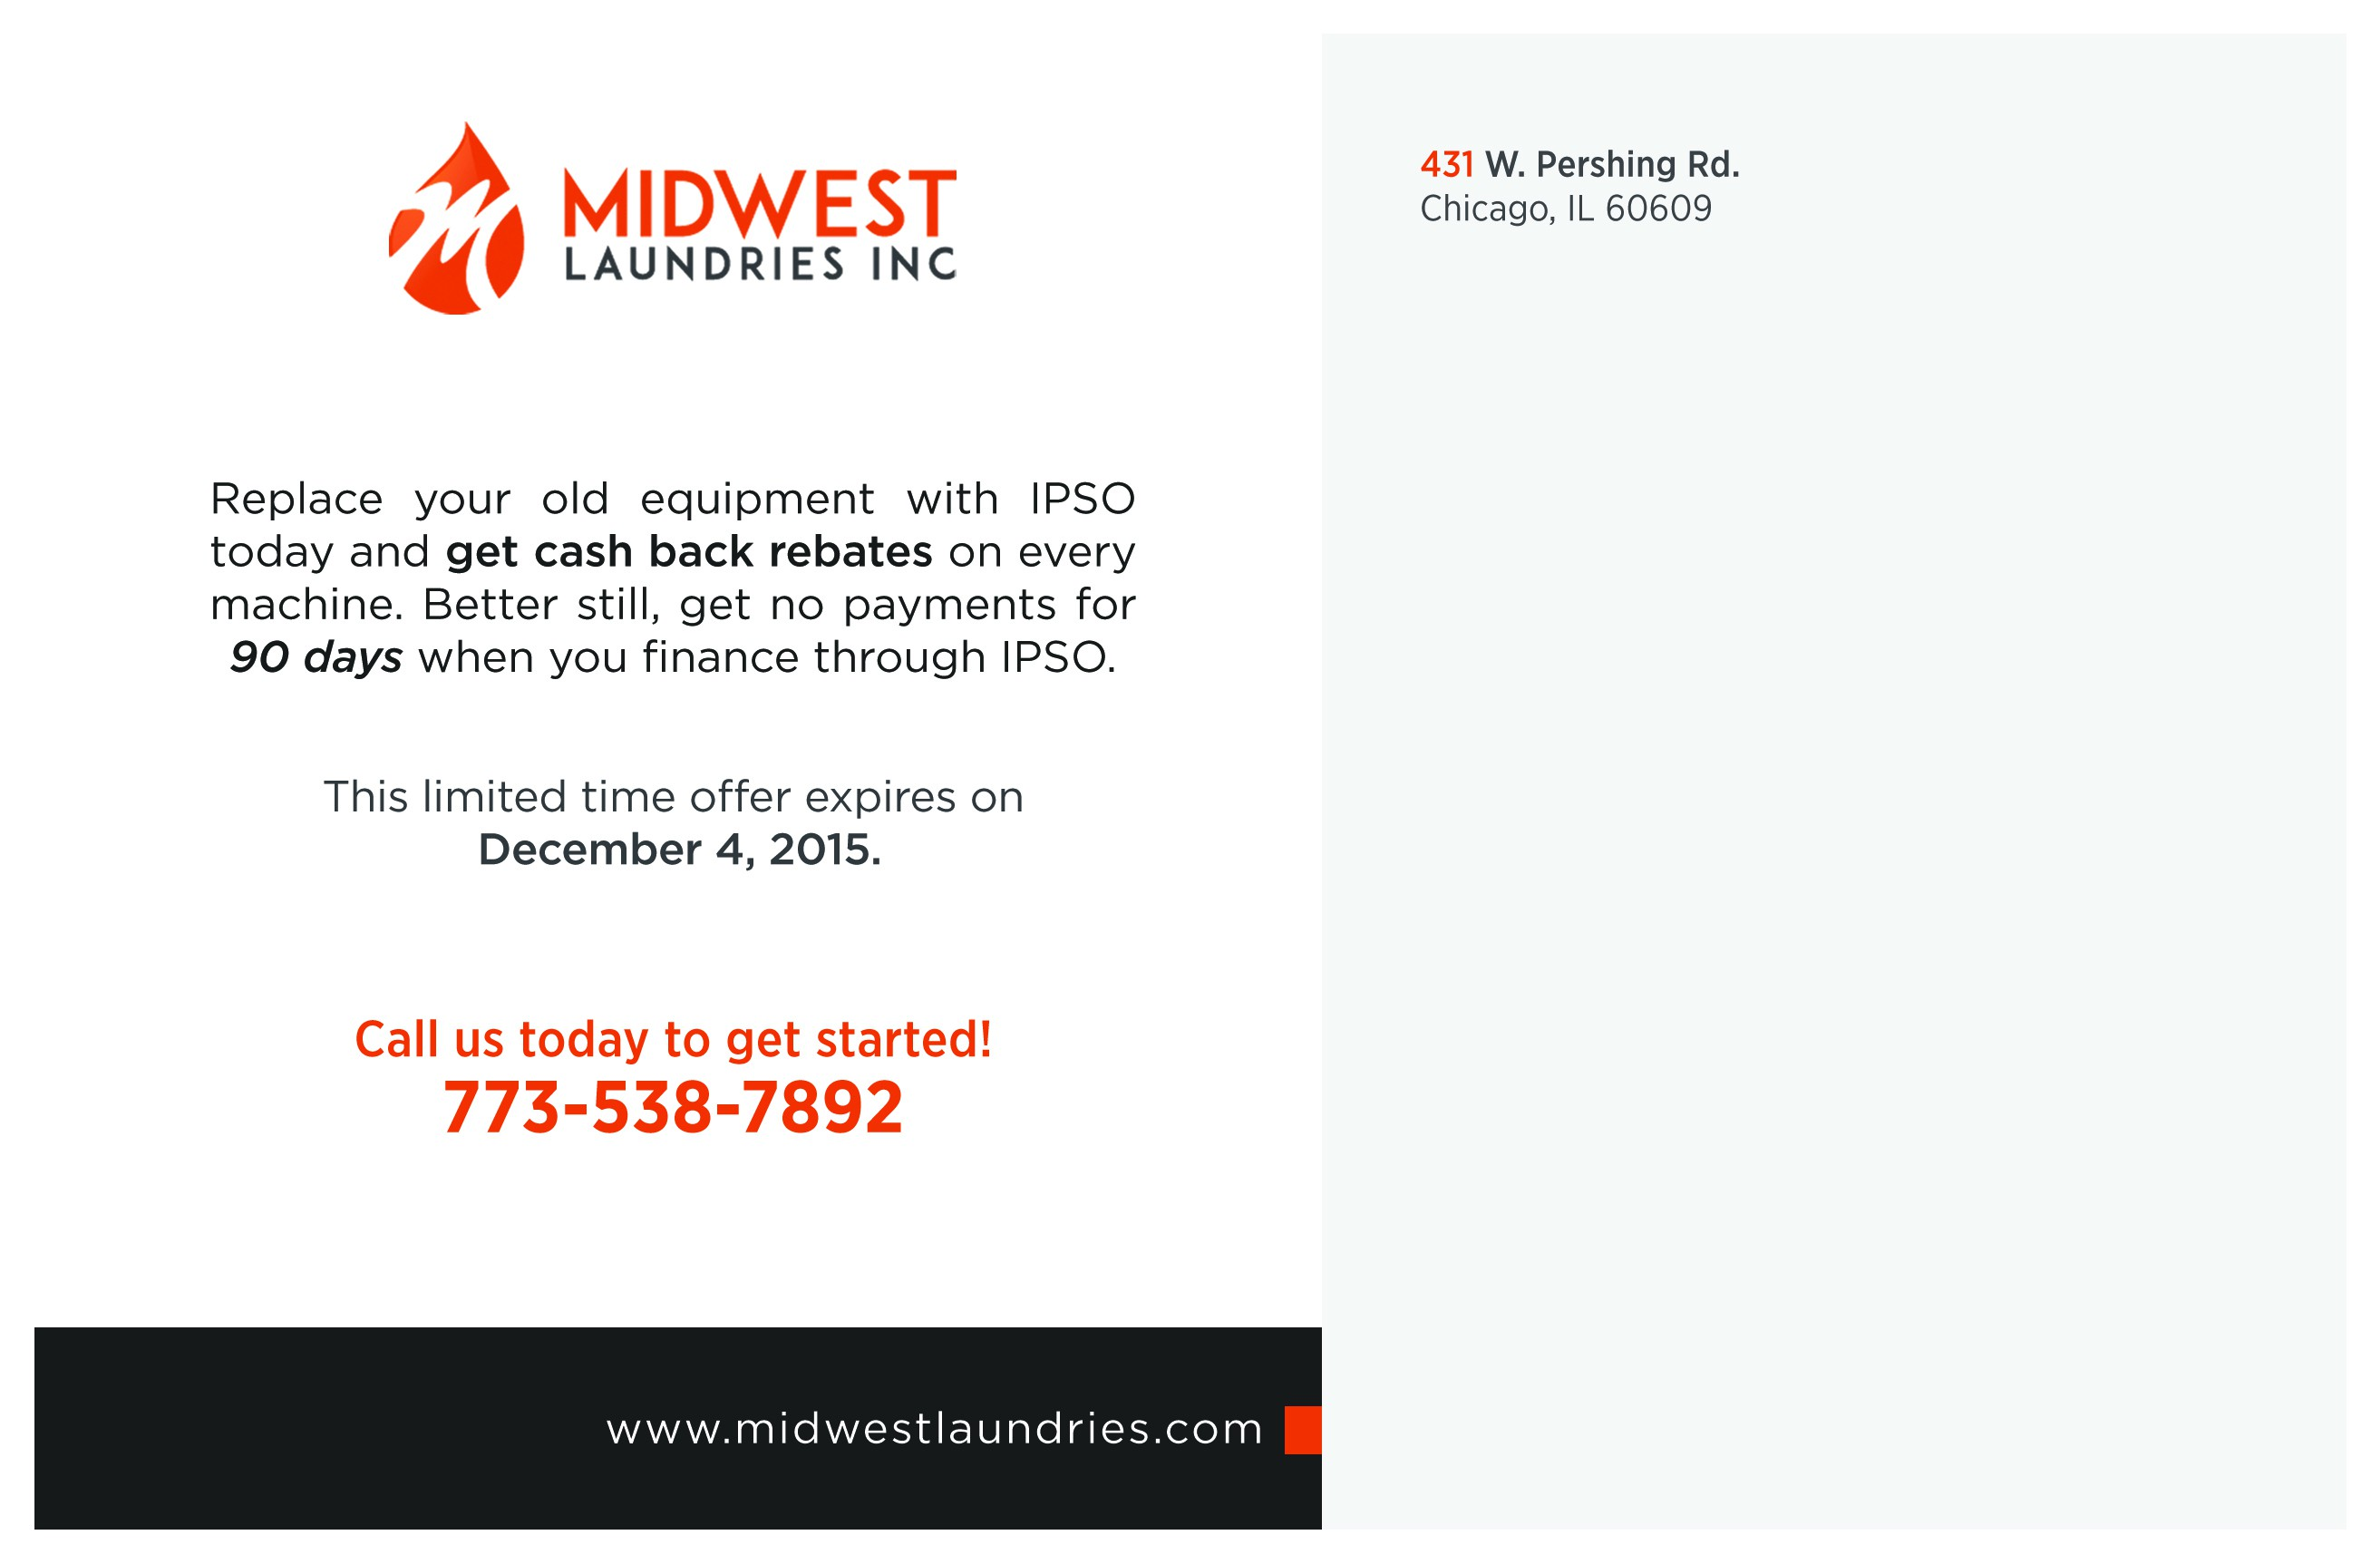 Create Minimalist Postcard Mailing for Industrial Laundry Distributor